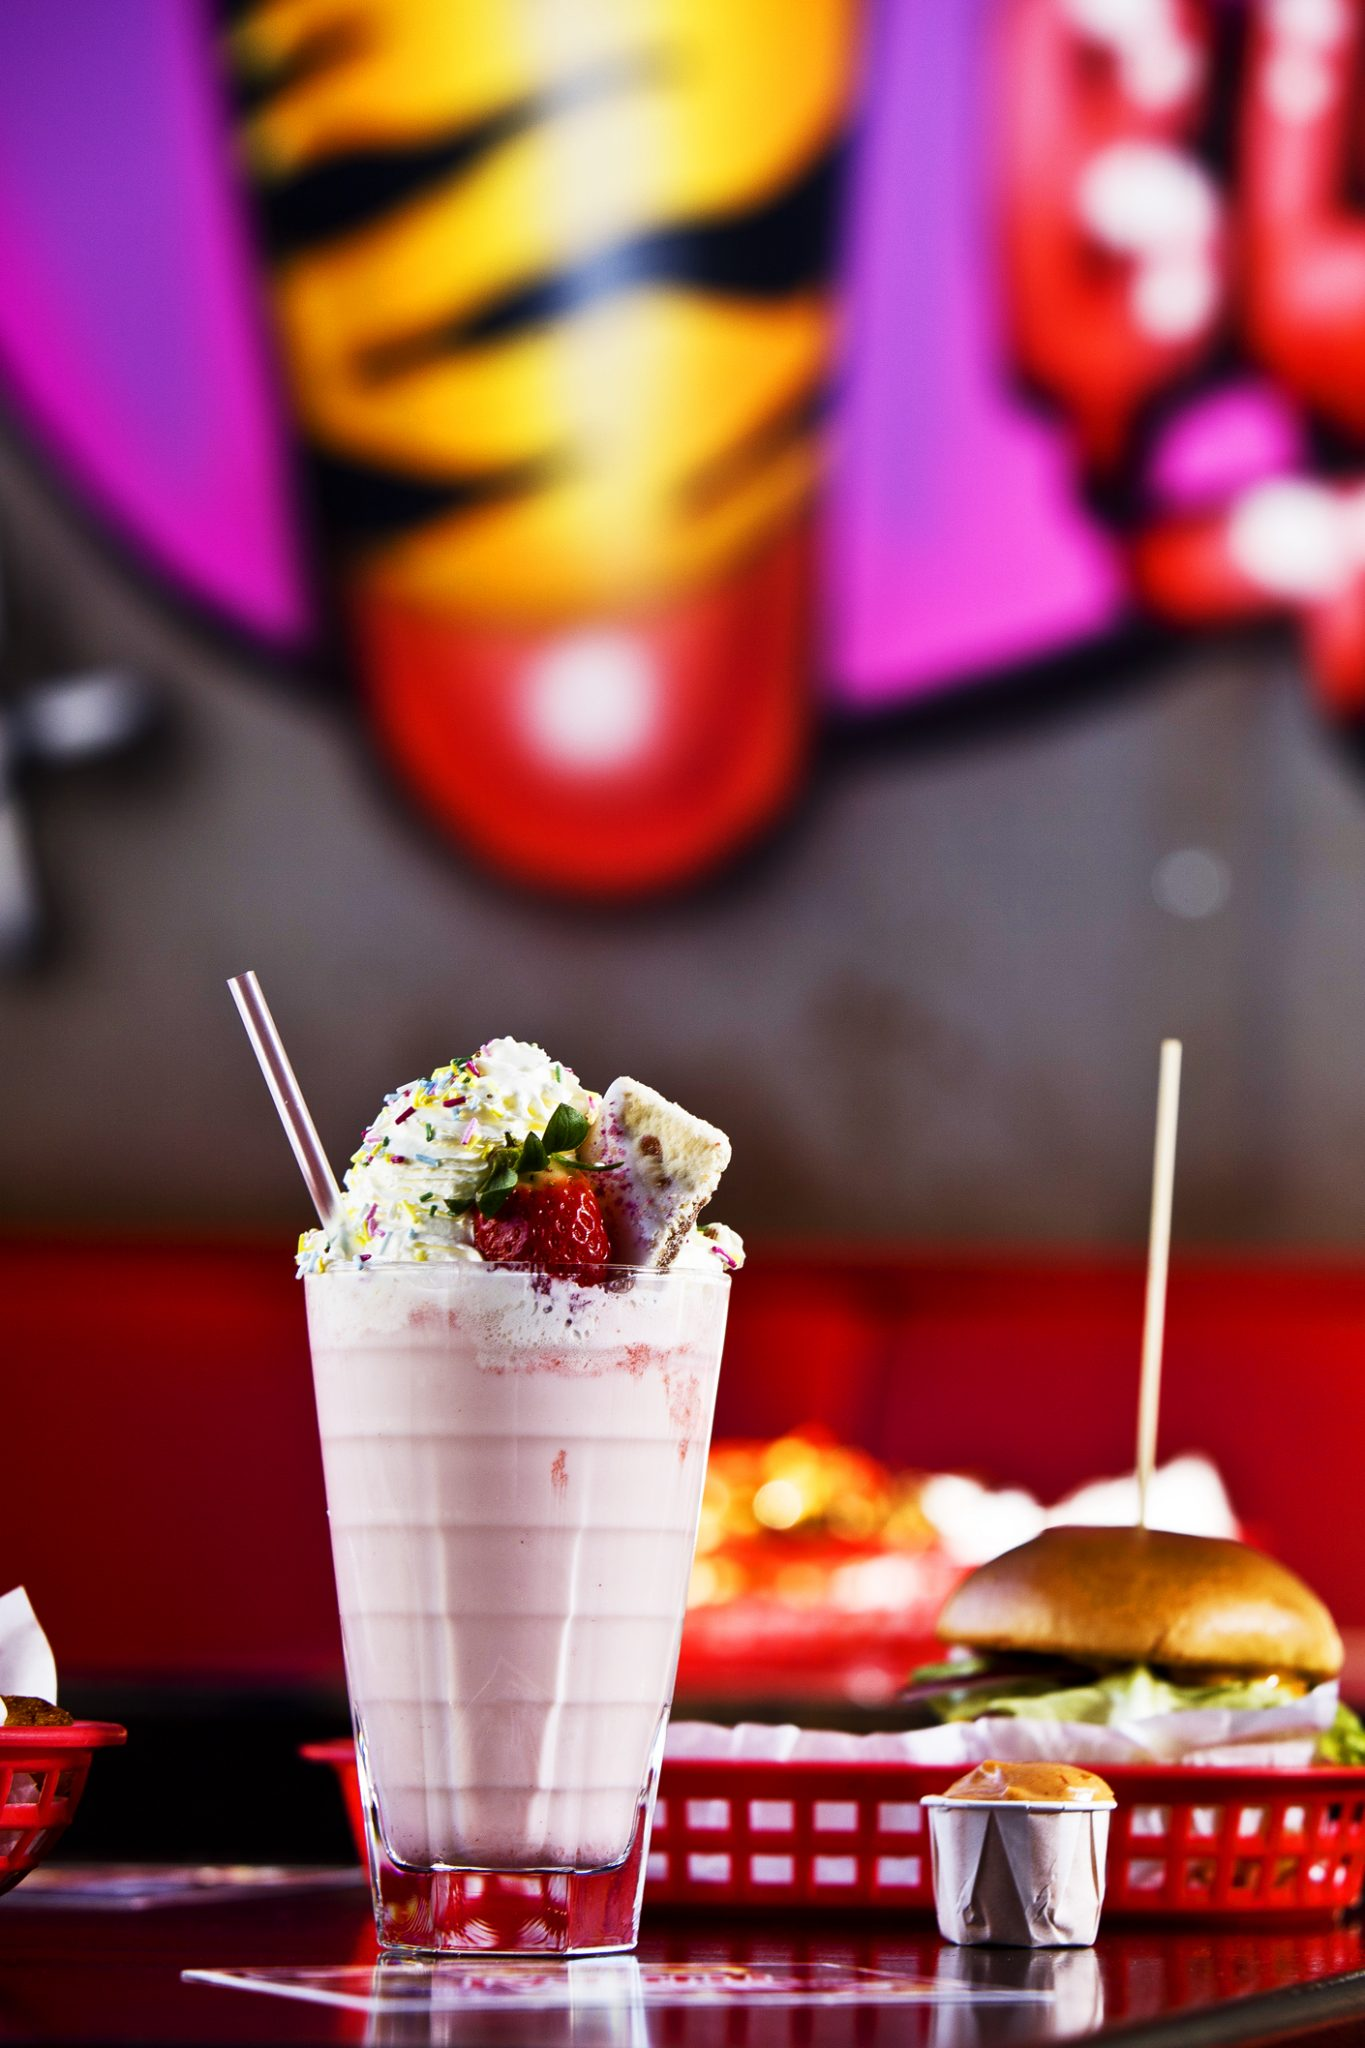 location-food-and-drink-photography-manchester-